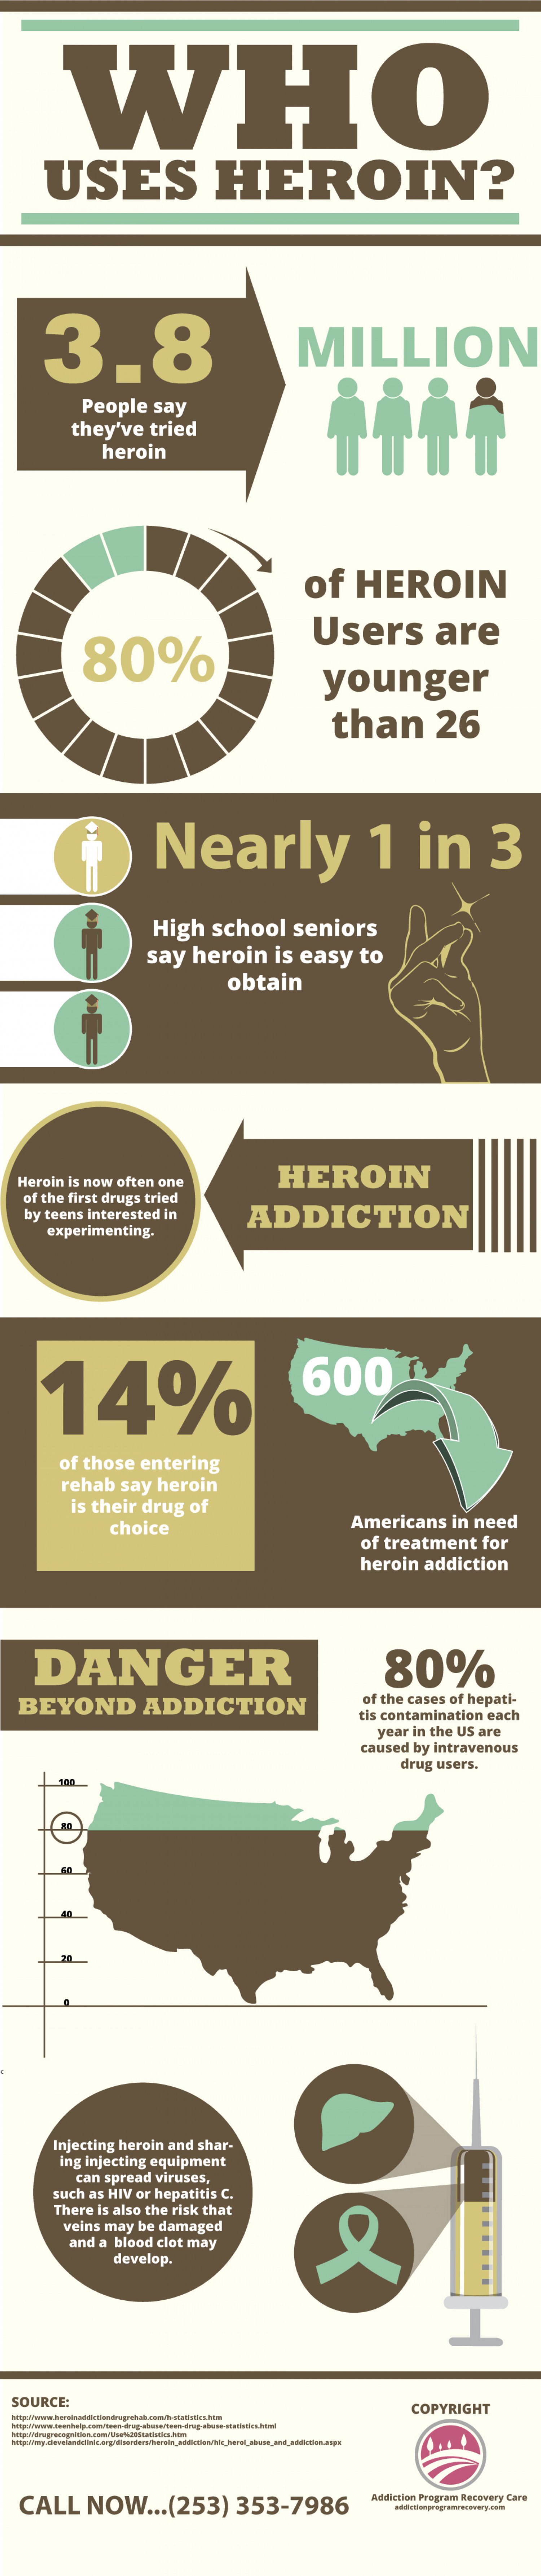 Who Uses Heroin? | Addiction Program Recovery Care Infographic